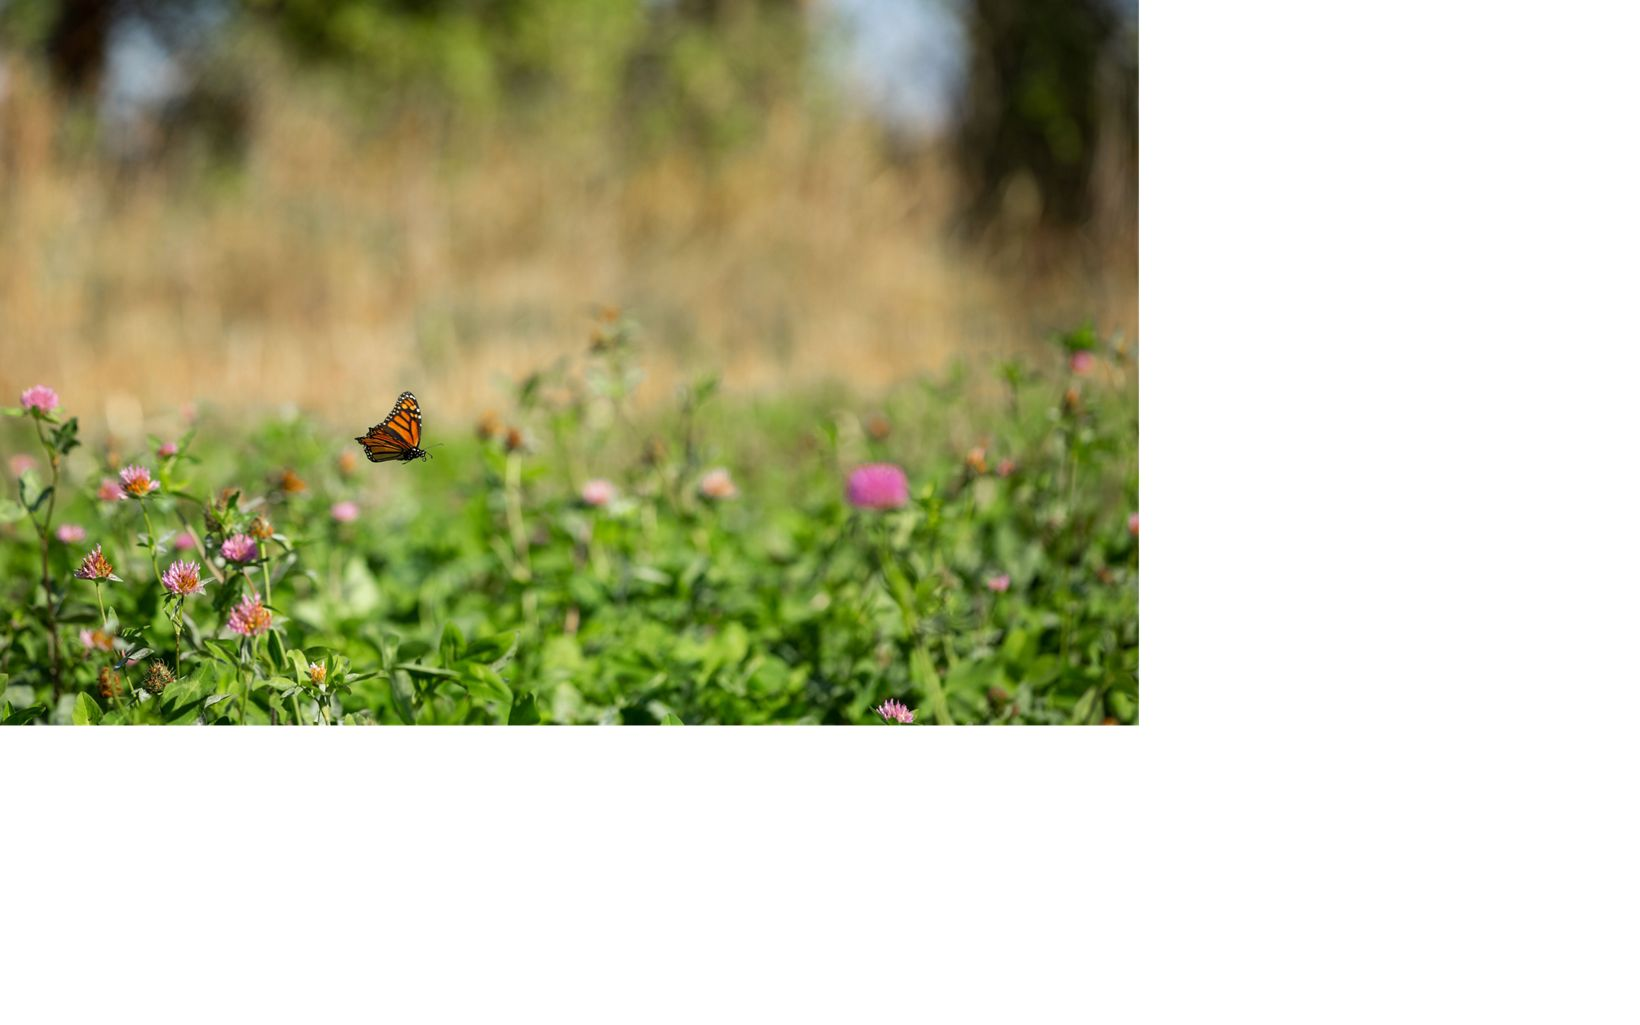 A monarch butterfly visiting cover crops on a farm in Michigan.